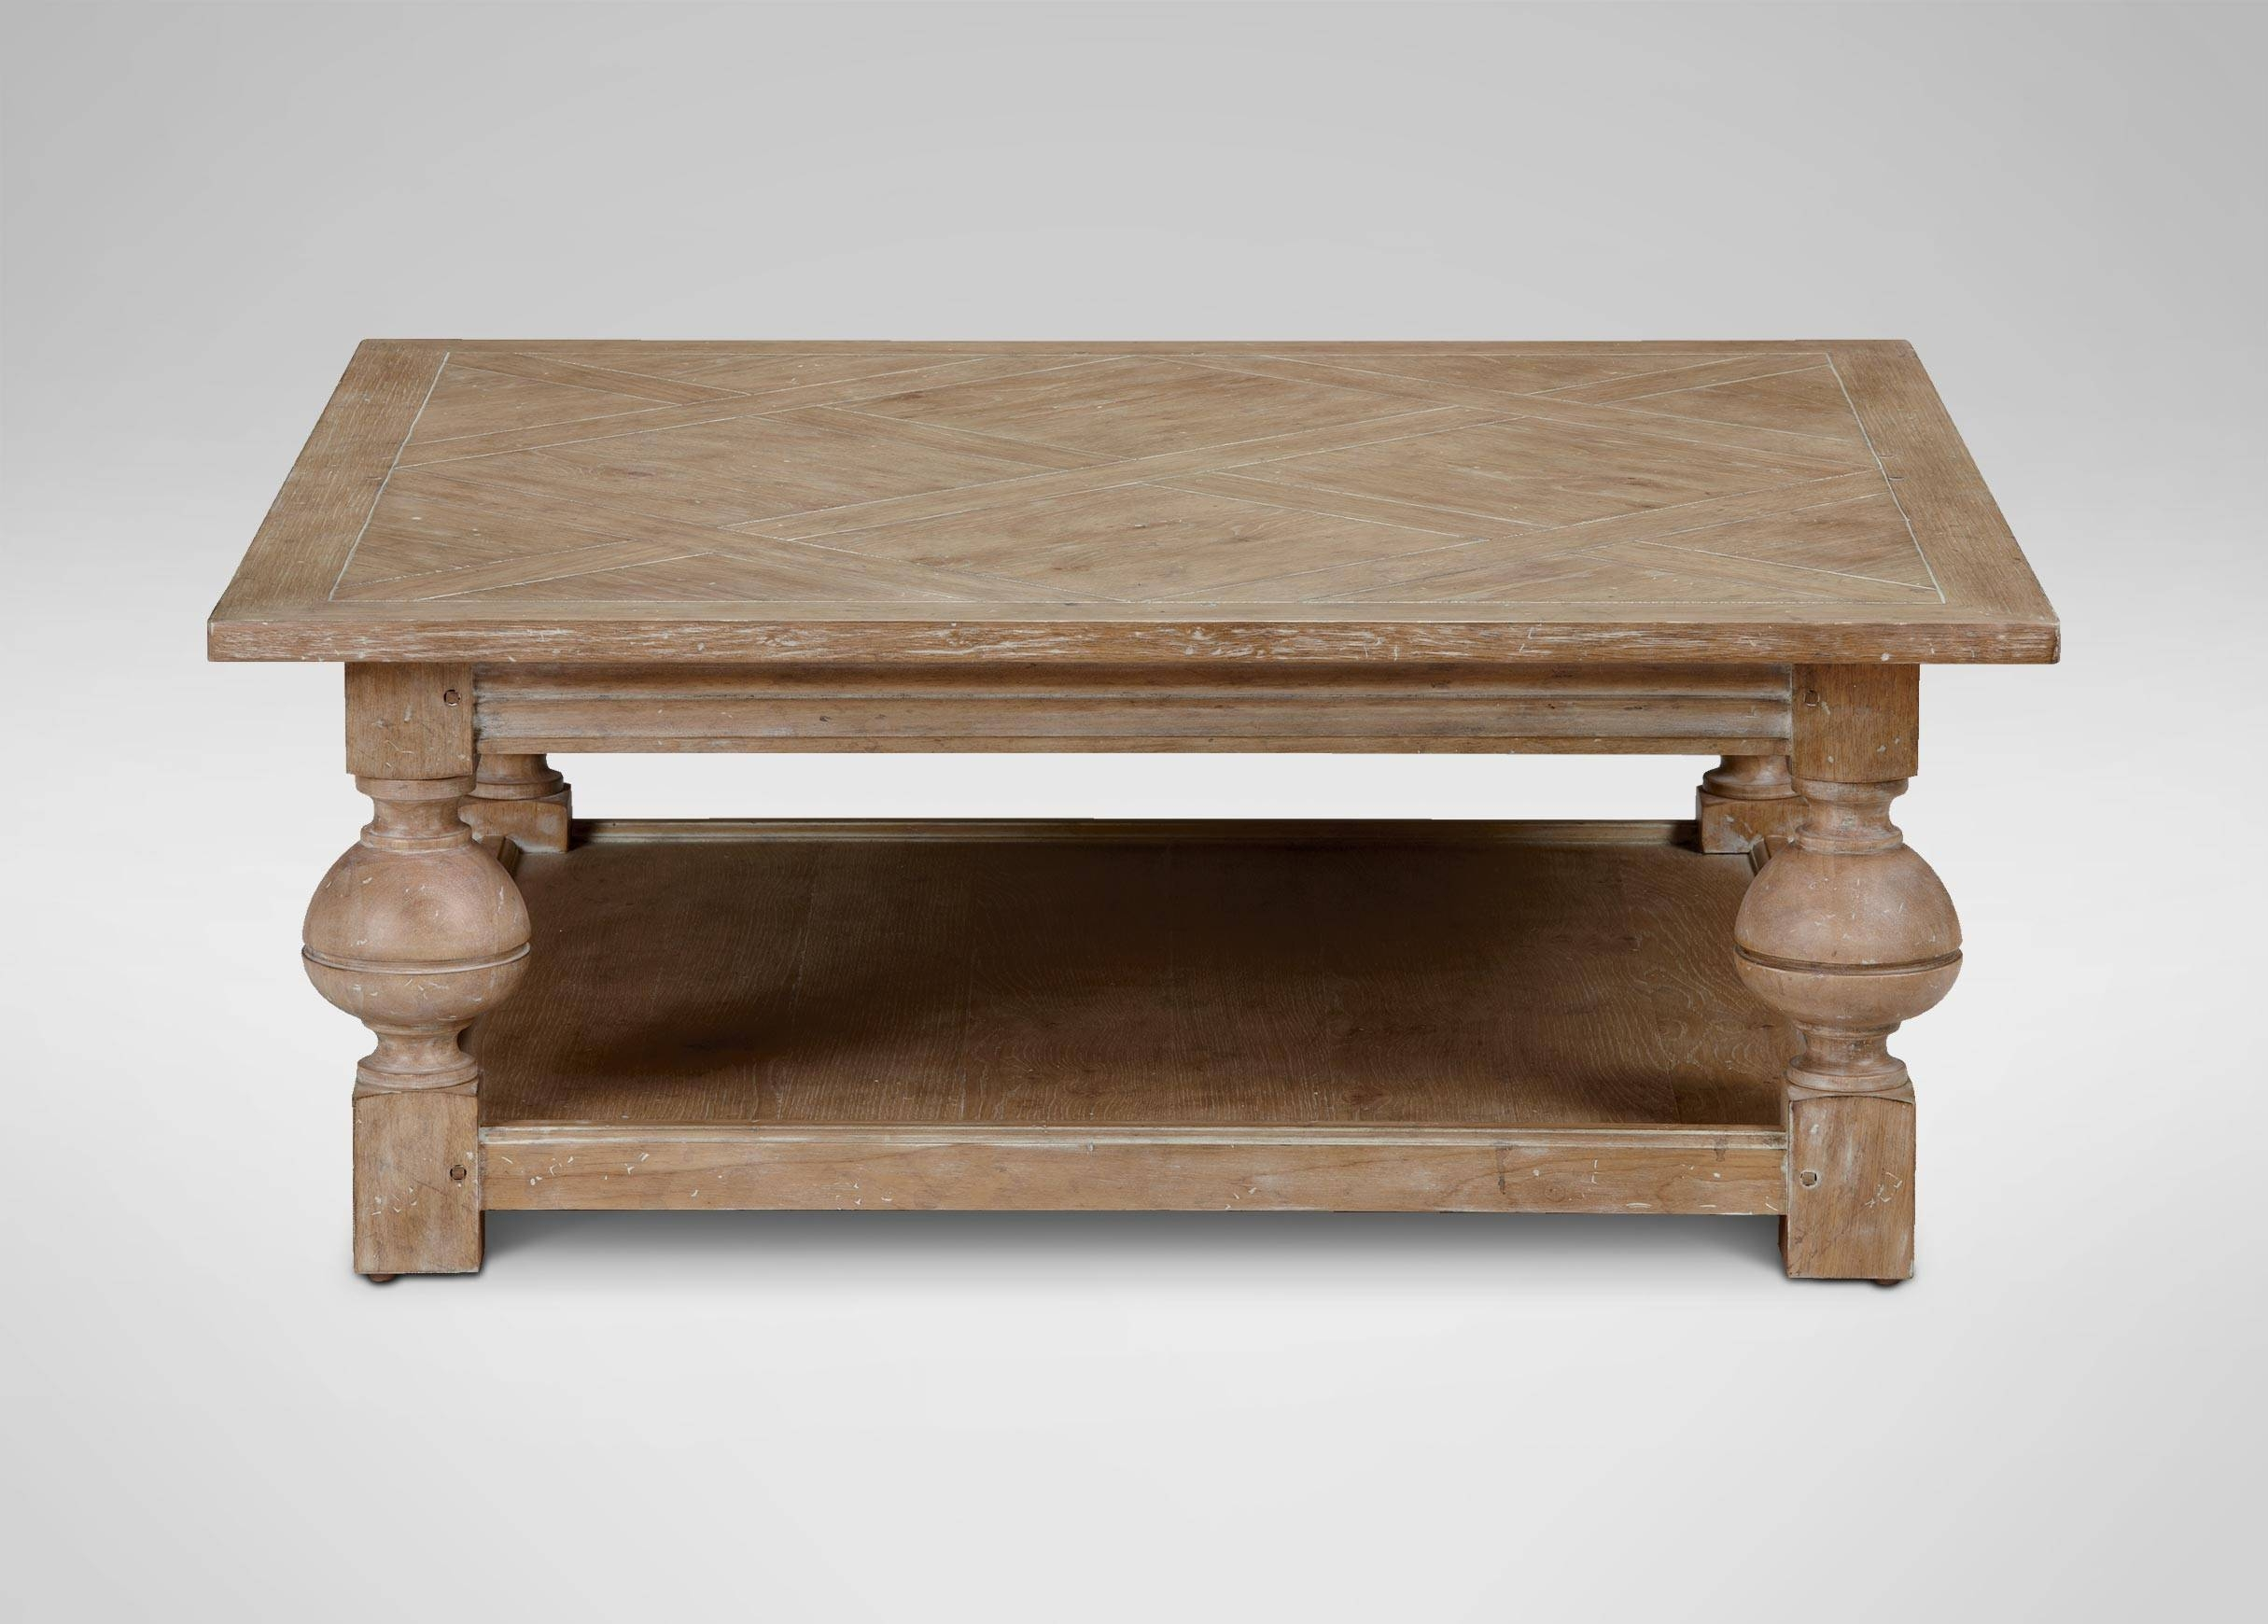 Deacon Square Coffee Table | Coffee Tables inside Square Coffee Tables (Image 4 of 30)